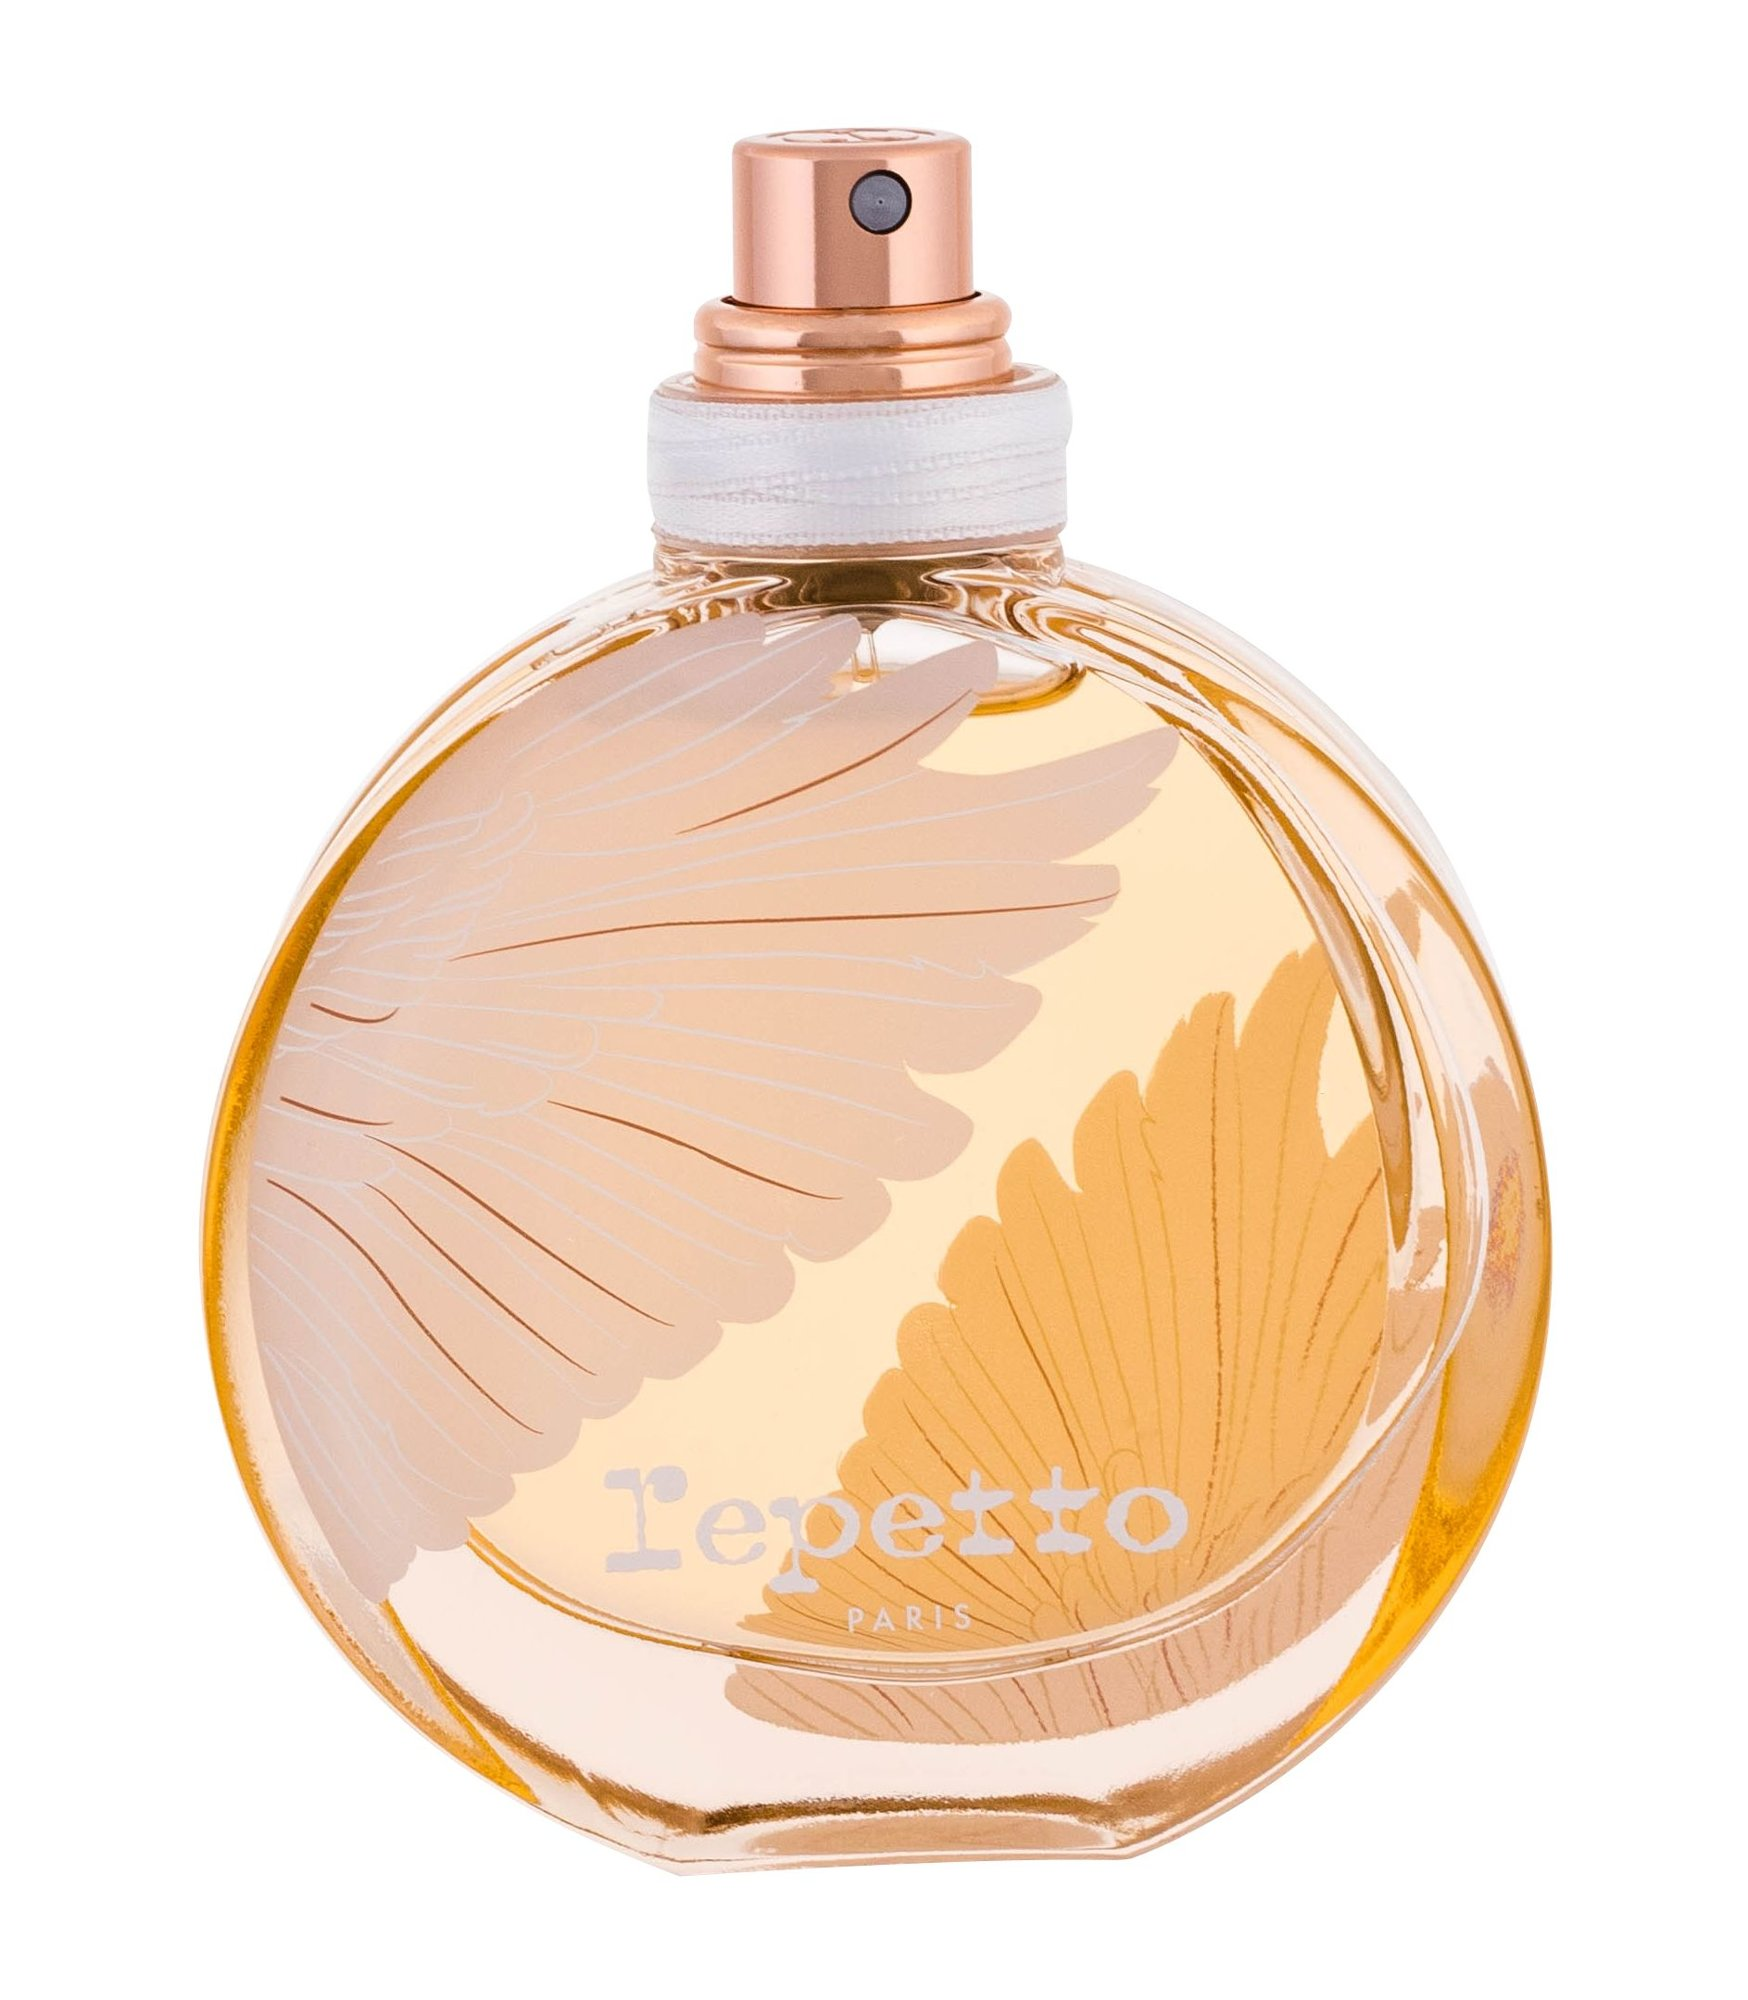 Repetto Le Ballet Blanc Eau de Toilette 50ml